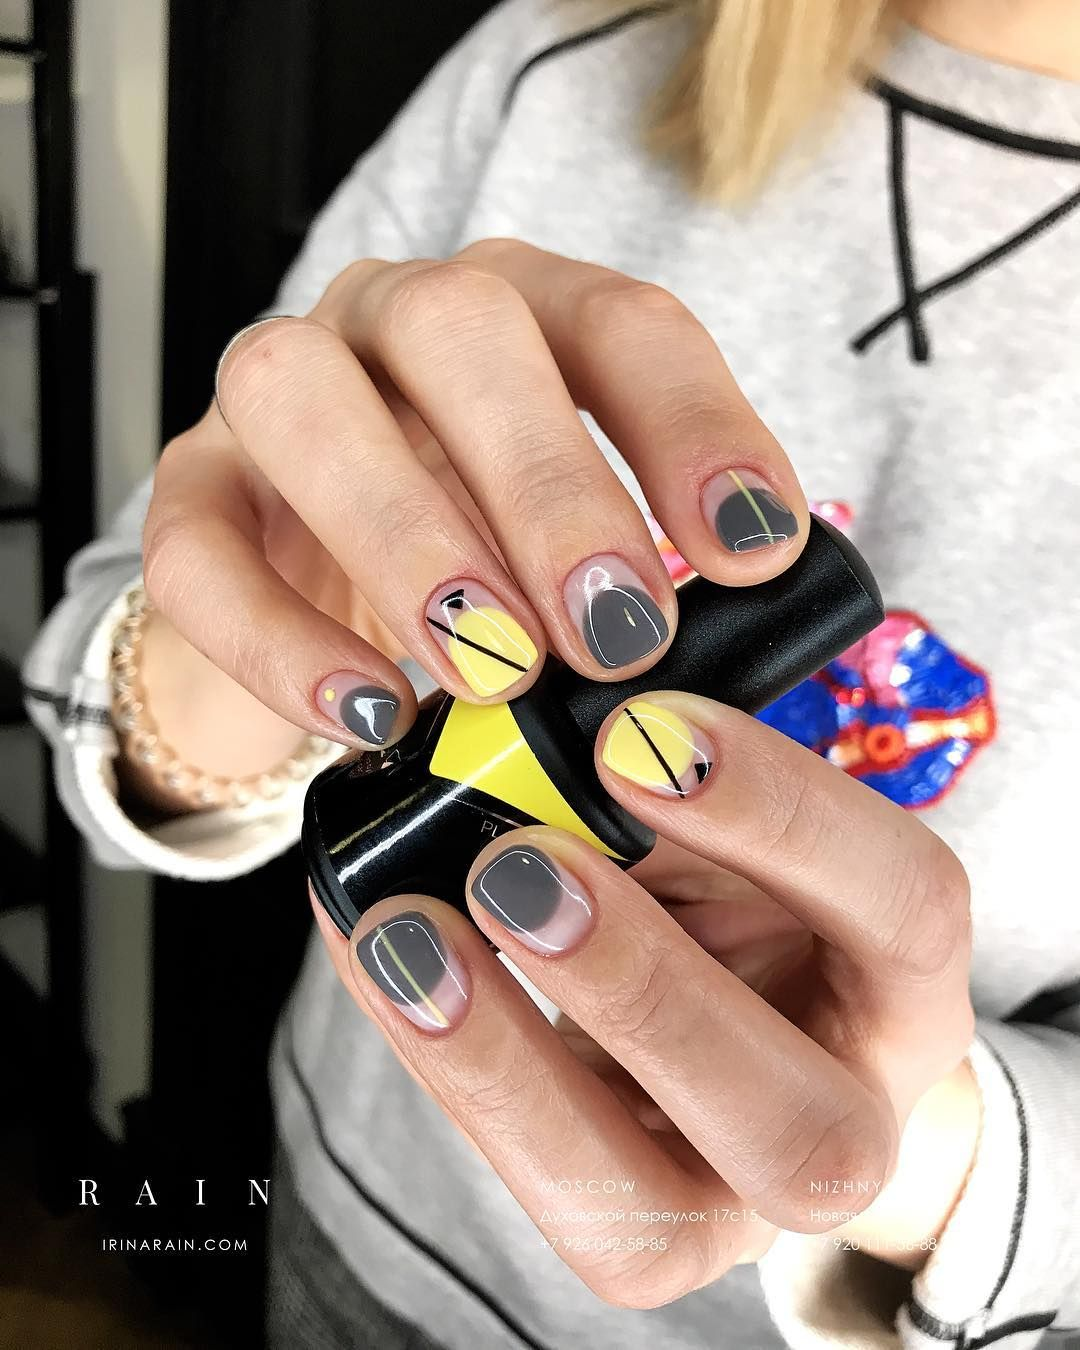 Pin by 𝔰𝔬𝔩 on nails. | Pinterest | Manicure, Makeup and Manicure ...